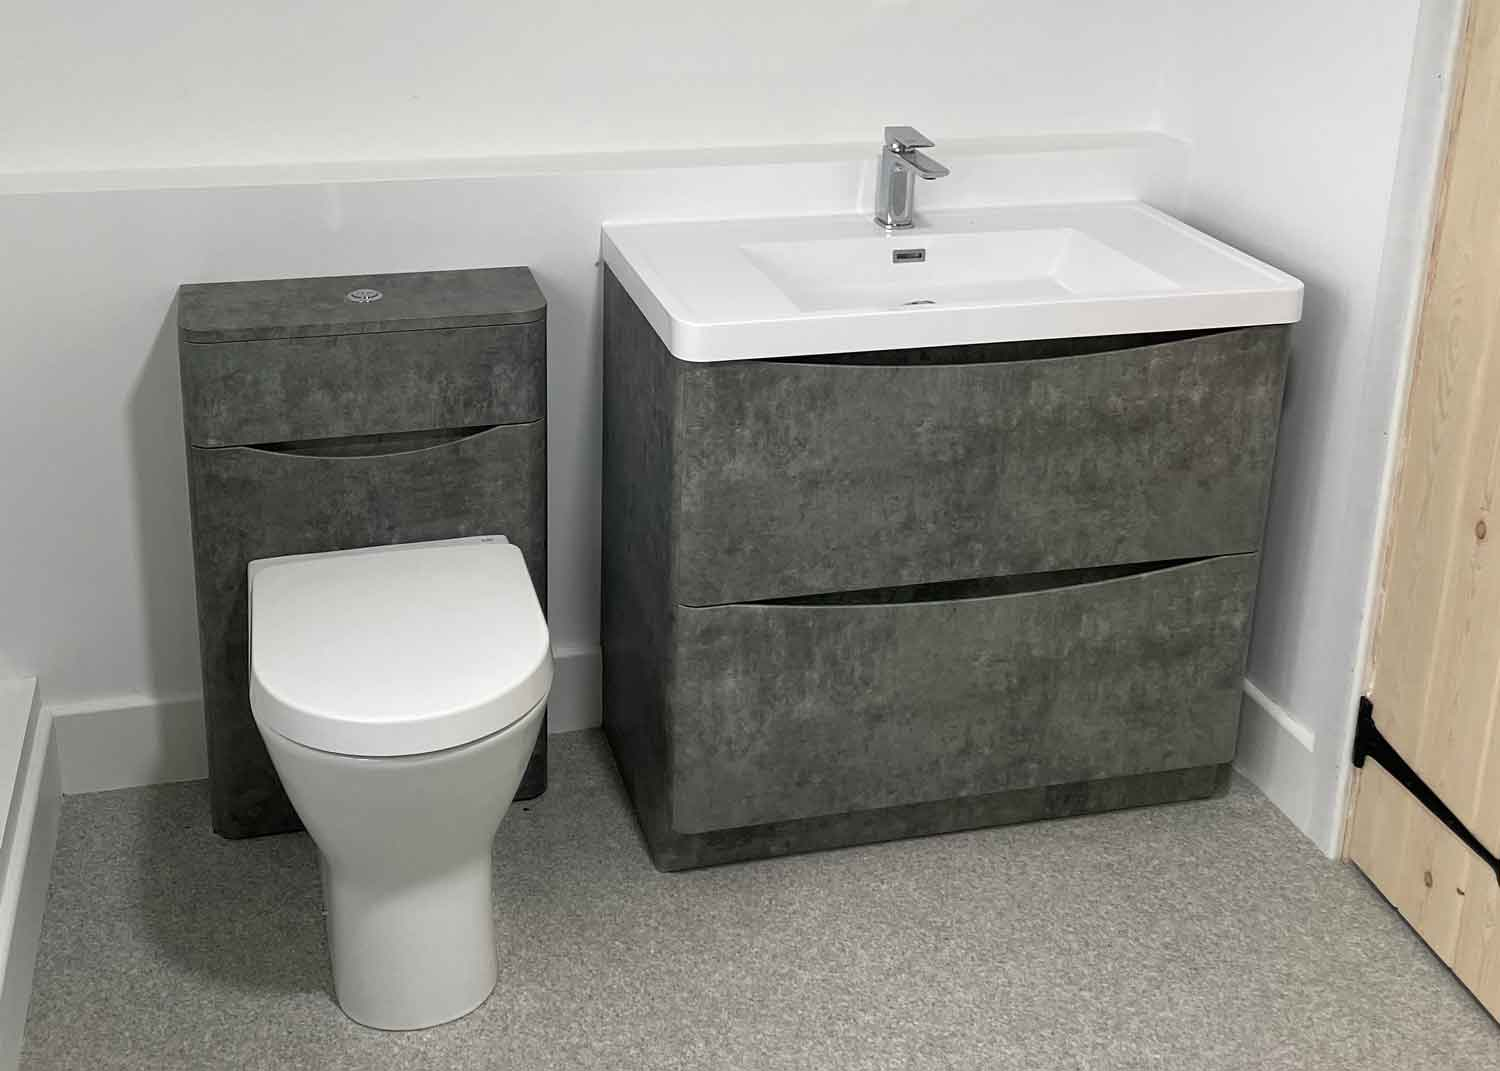 Sparta Mech plumbing - sink and toilet